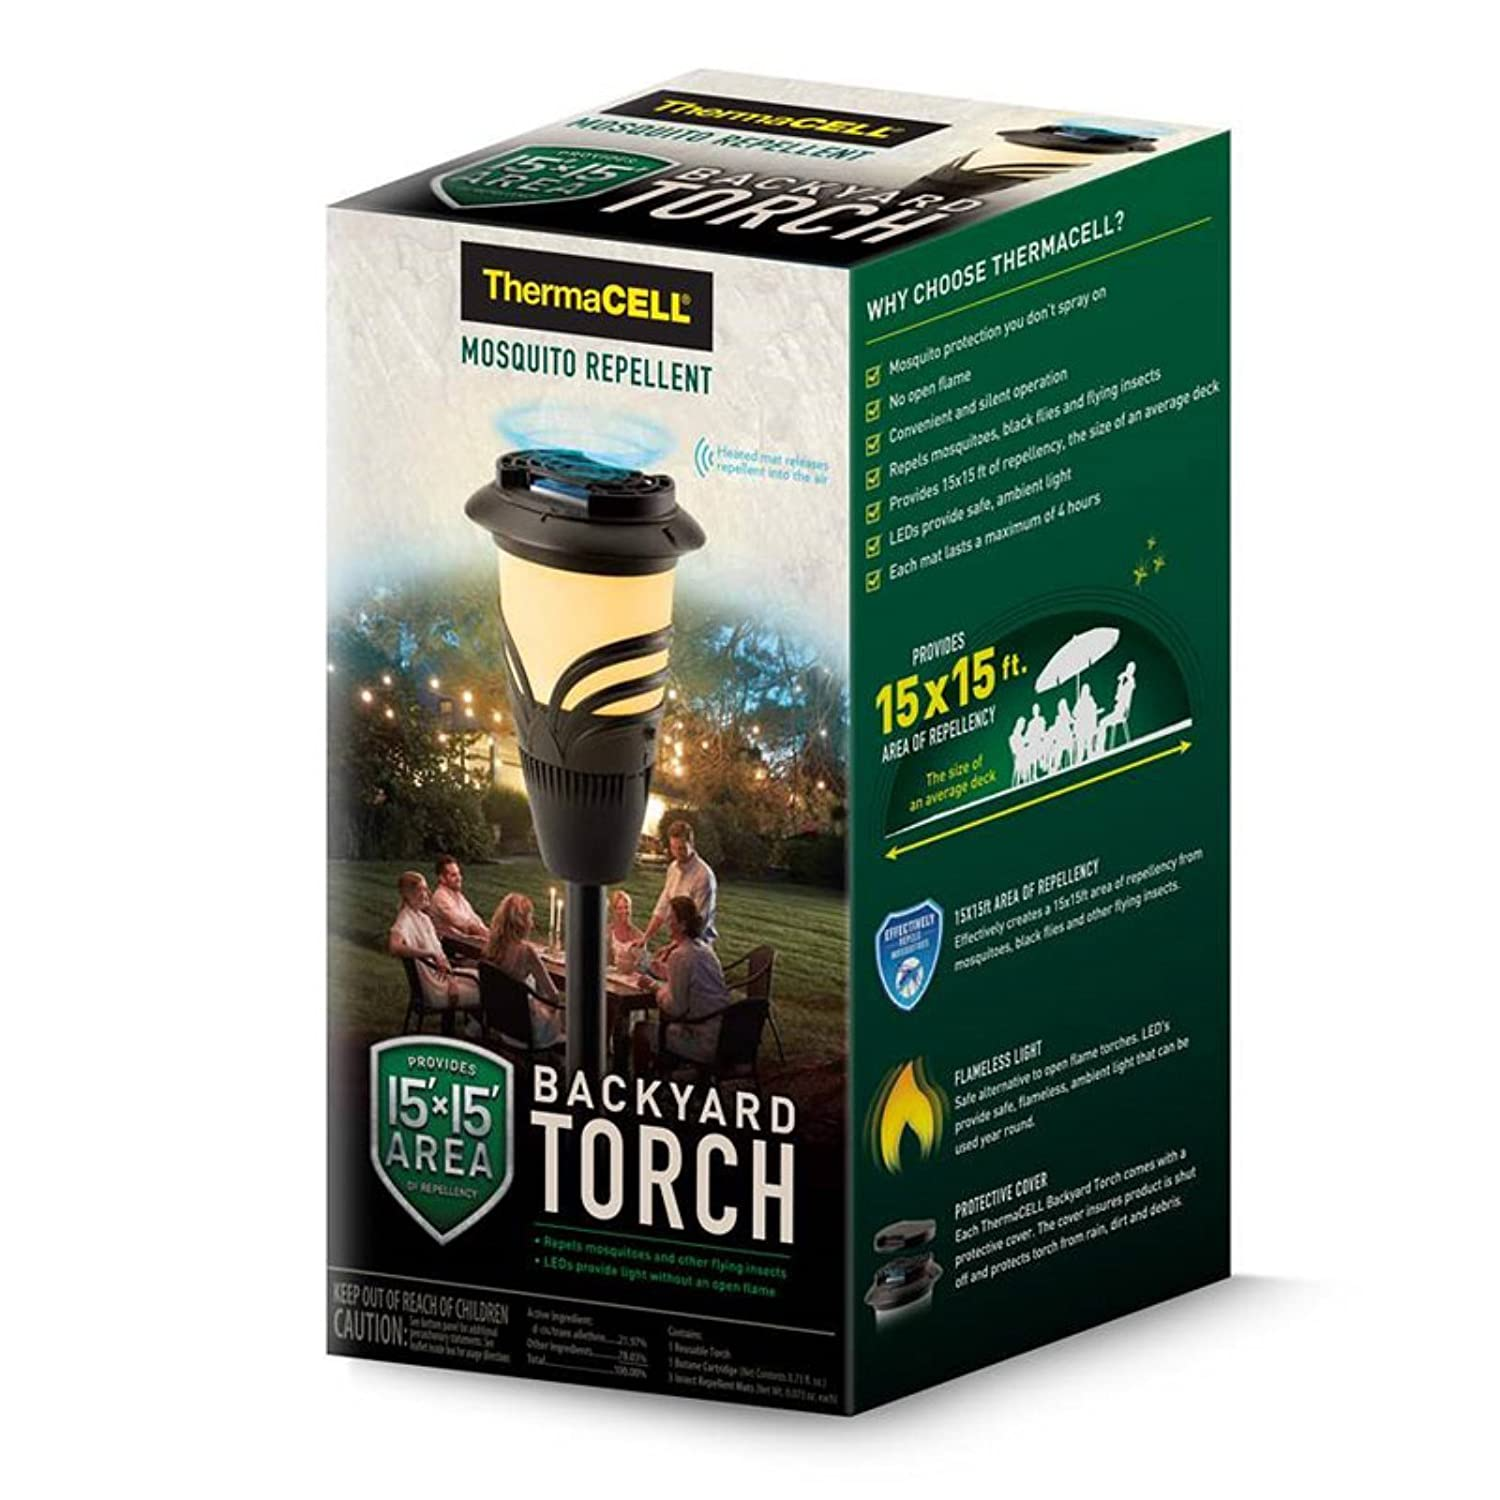 Amazon.com: Thermacell Repellents Inc Mosquito Repellent Backyard Torch:  Home U0026 Kitchen